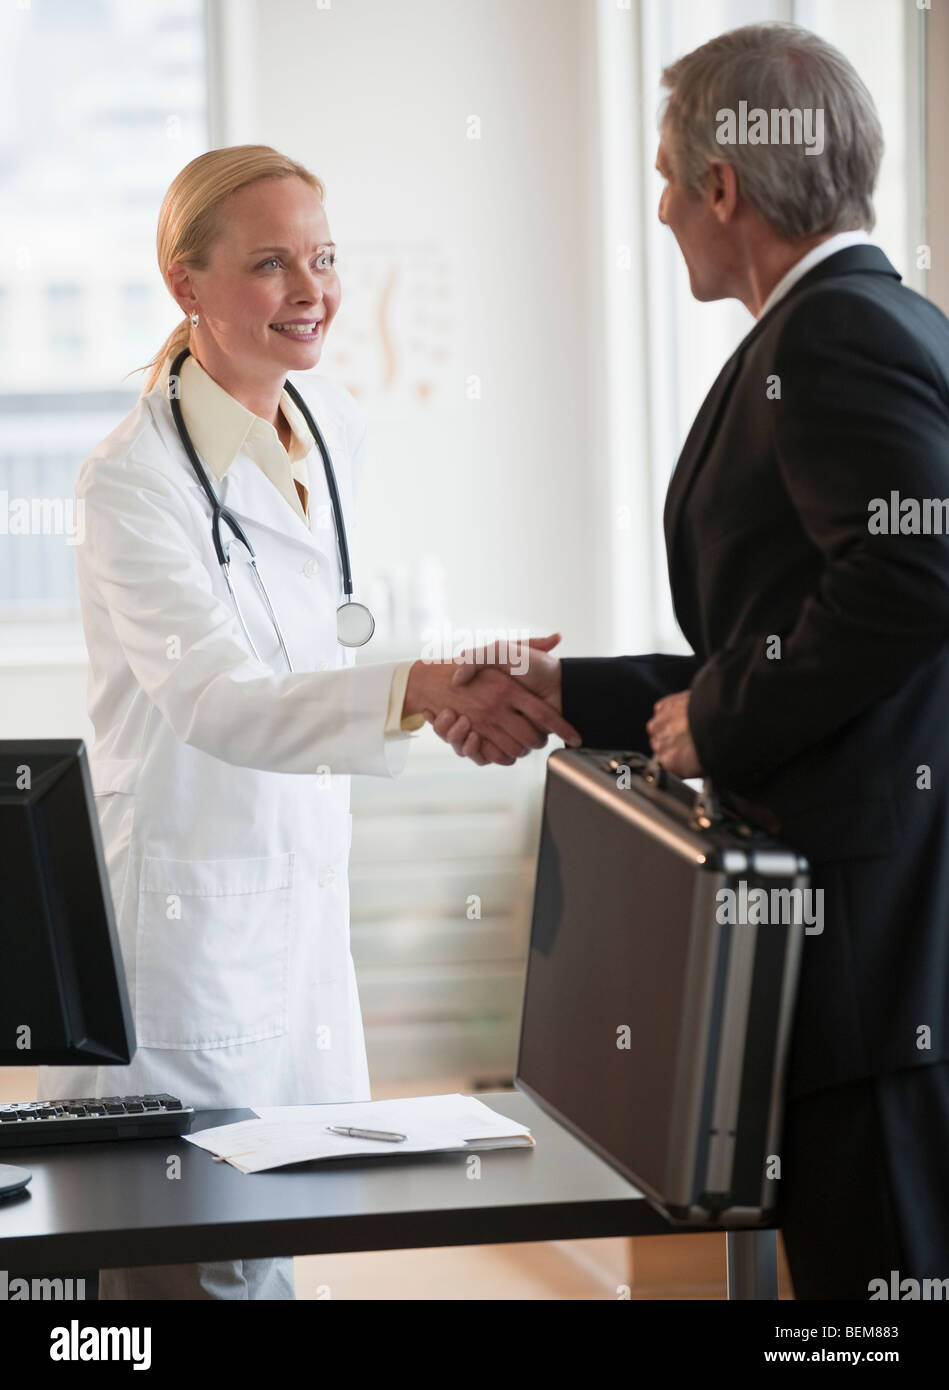 Female doctor greeting salesman - Stock Image